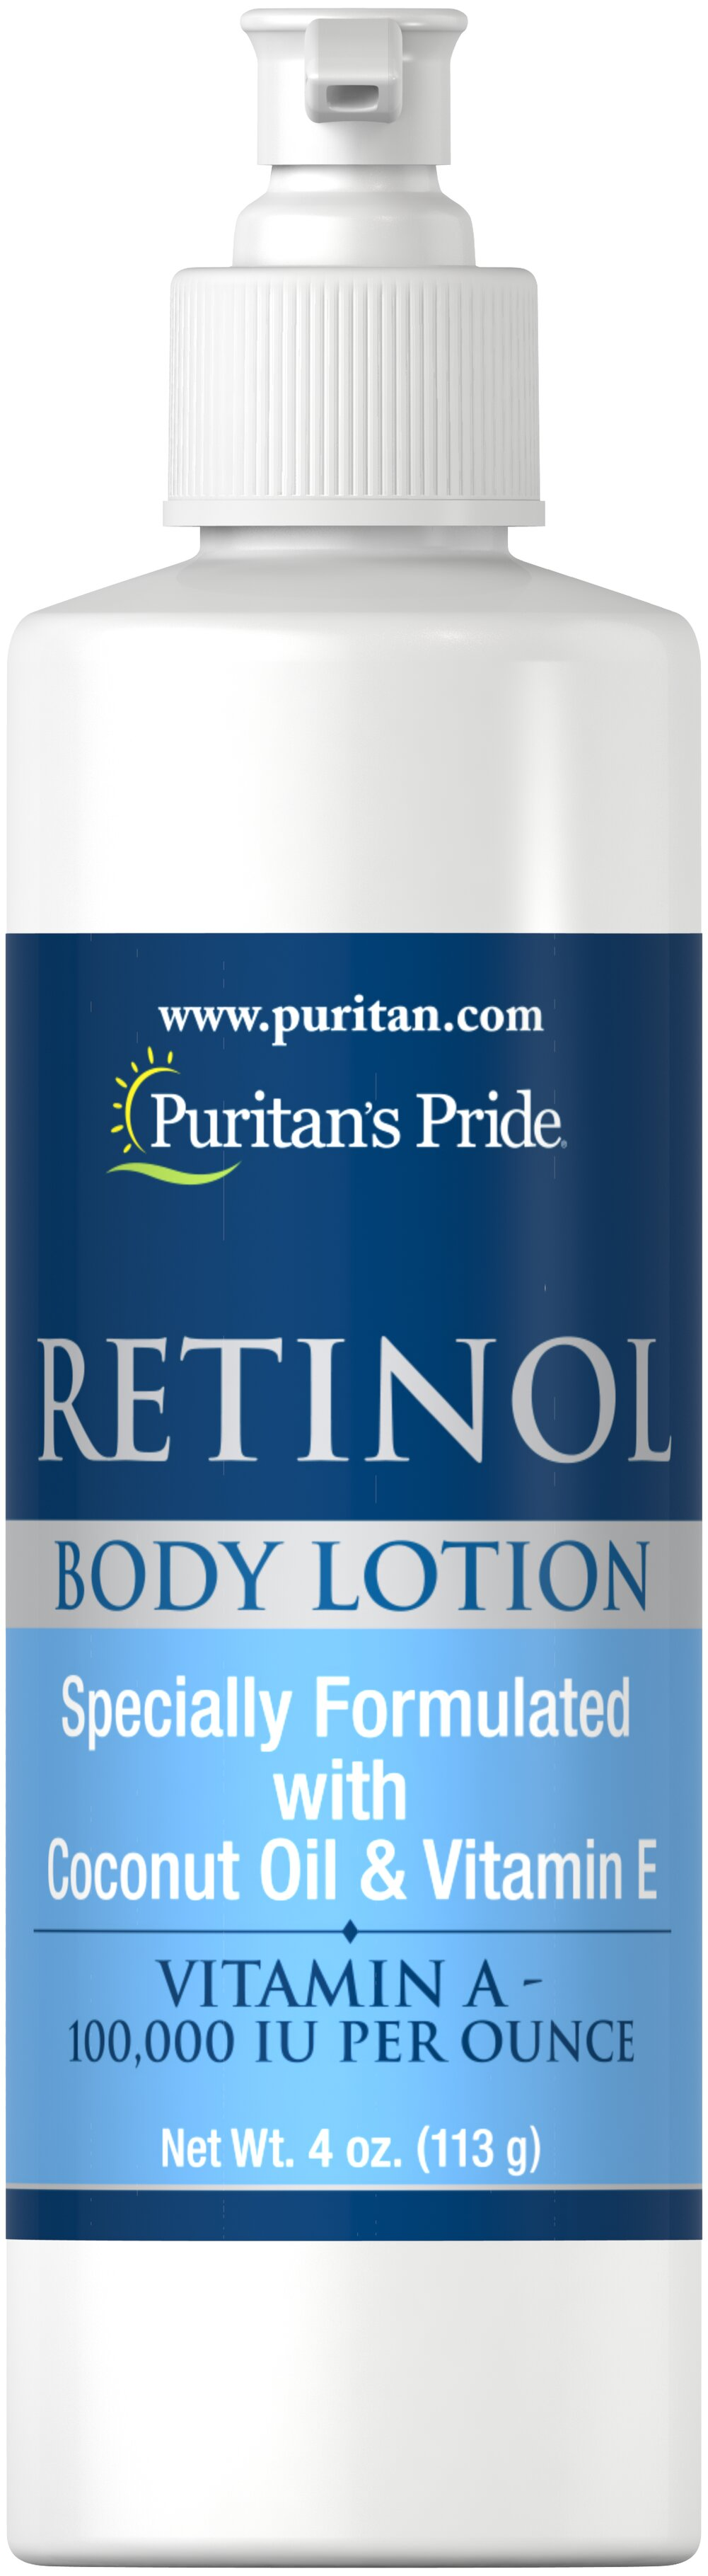 Retinol Body Lotion (Vitamin A 100,000 IU Per Ounce)  4 oz Lotion 100000 IU $13.99